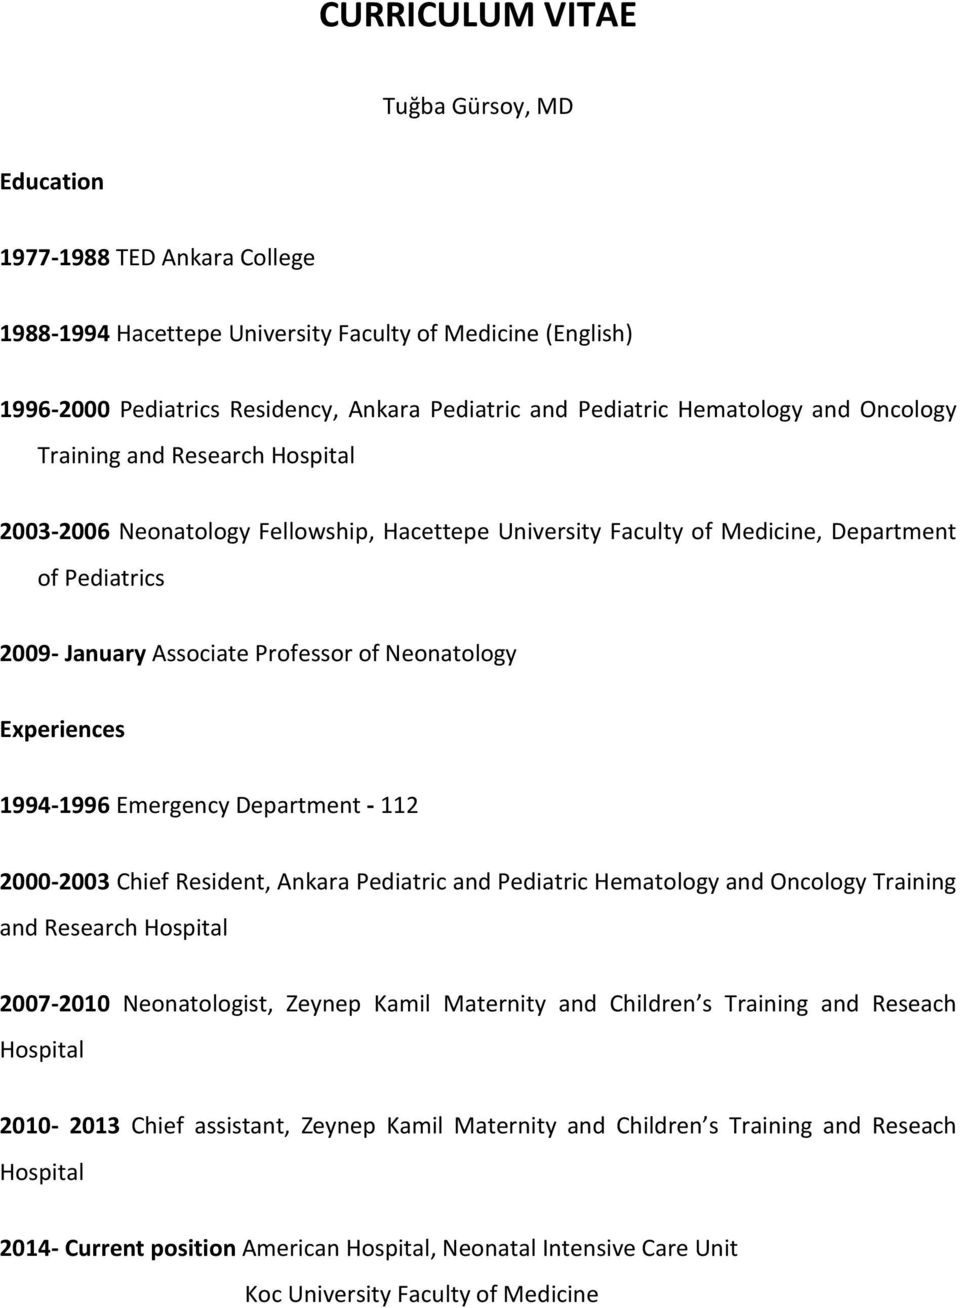 Neonatology Experiences 1994-1996 Emergency Department - 112 2000-2003 Chief Resident, Ankara Pediatric and Pediatric Hematology and Oncology Training and Research Hospital 2007-2010 Neonatologist,